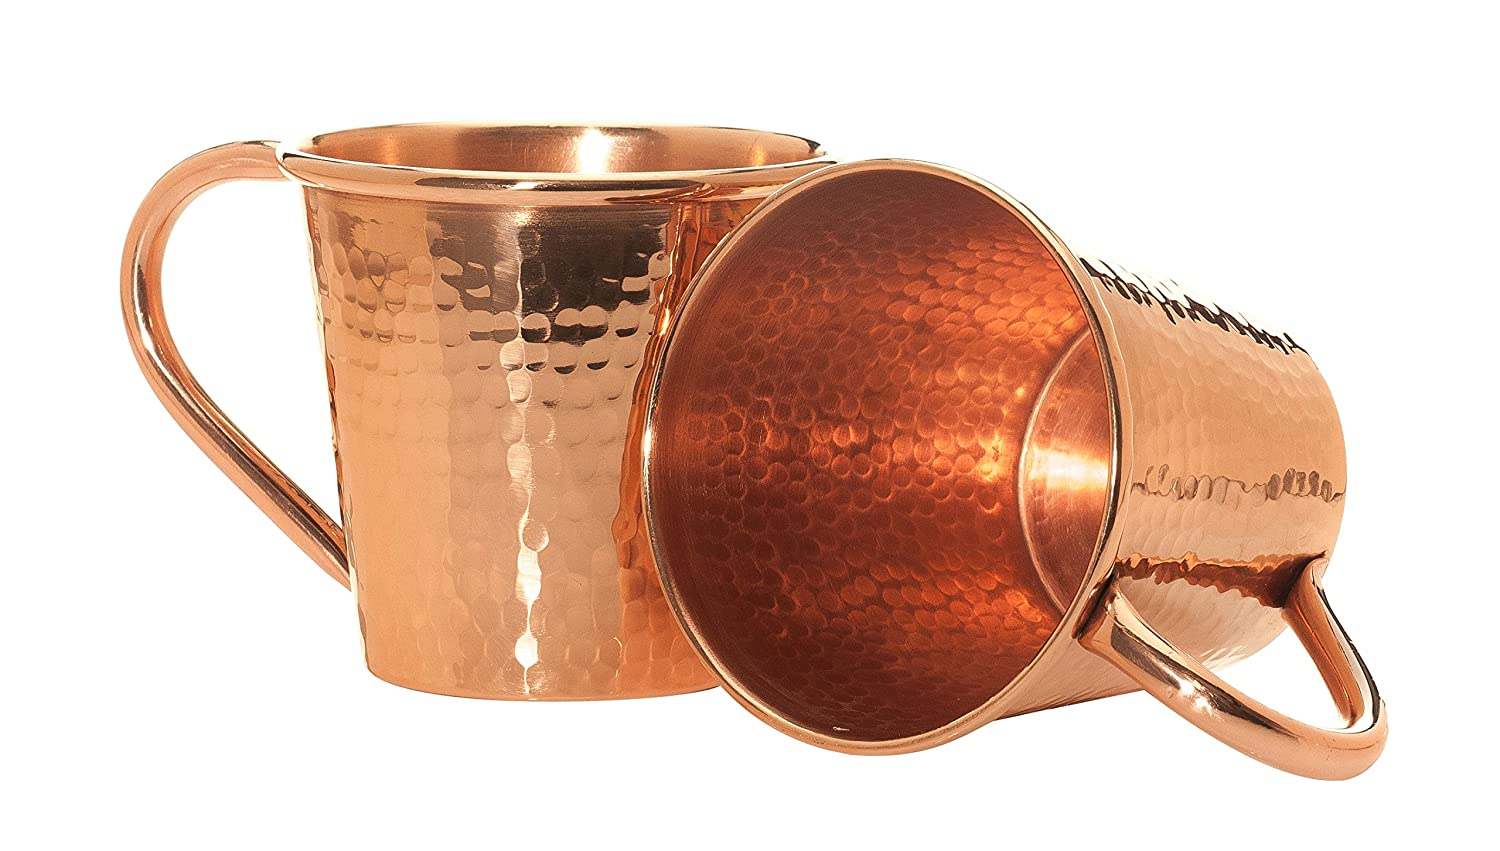 Sertodo Copper Moscow Mule Mug, 12 Fluid Ounce, Hammered Copper, Set of 2 CMMc-12-2